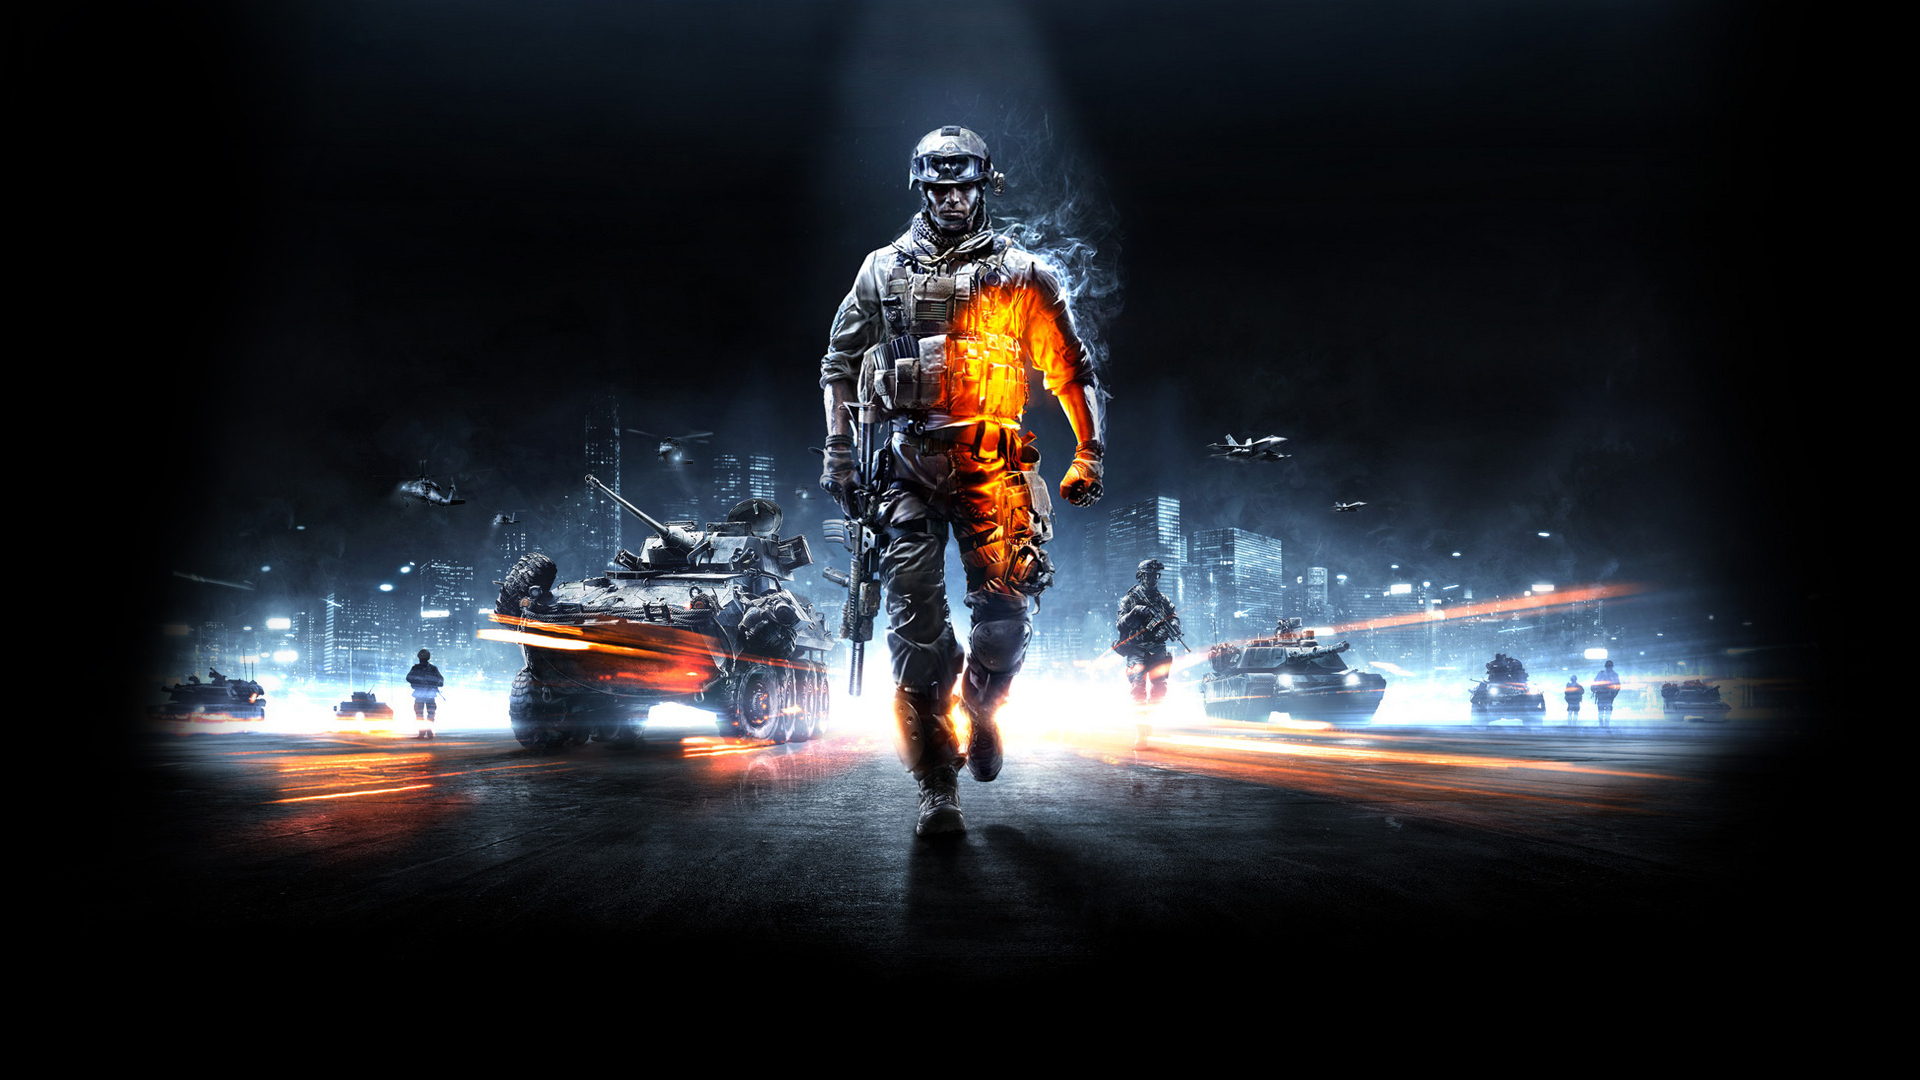 Battlefield 4 Games Wallpaper Hd: Battlefield 4 PC Game